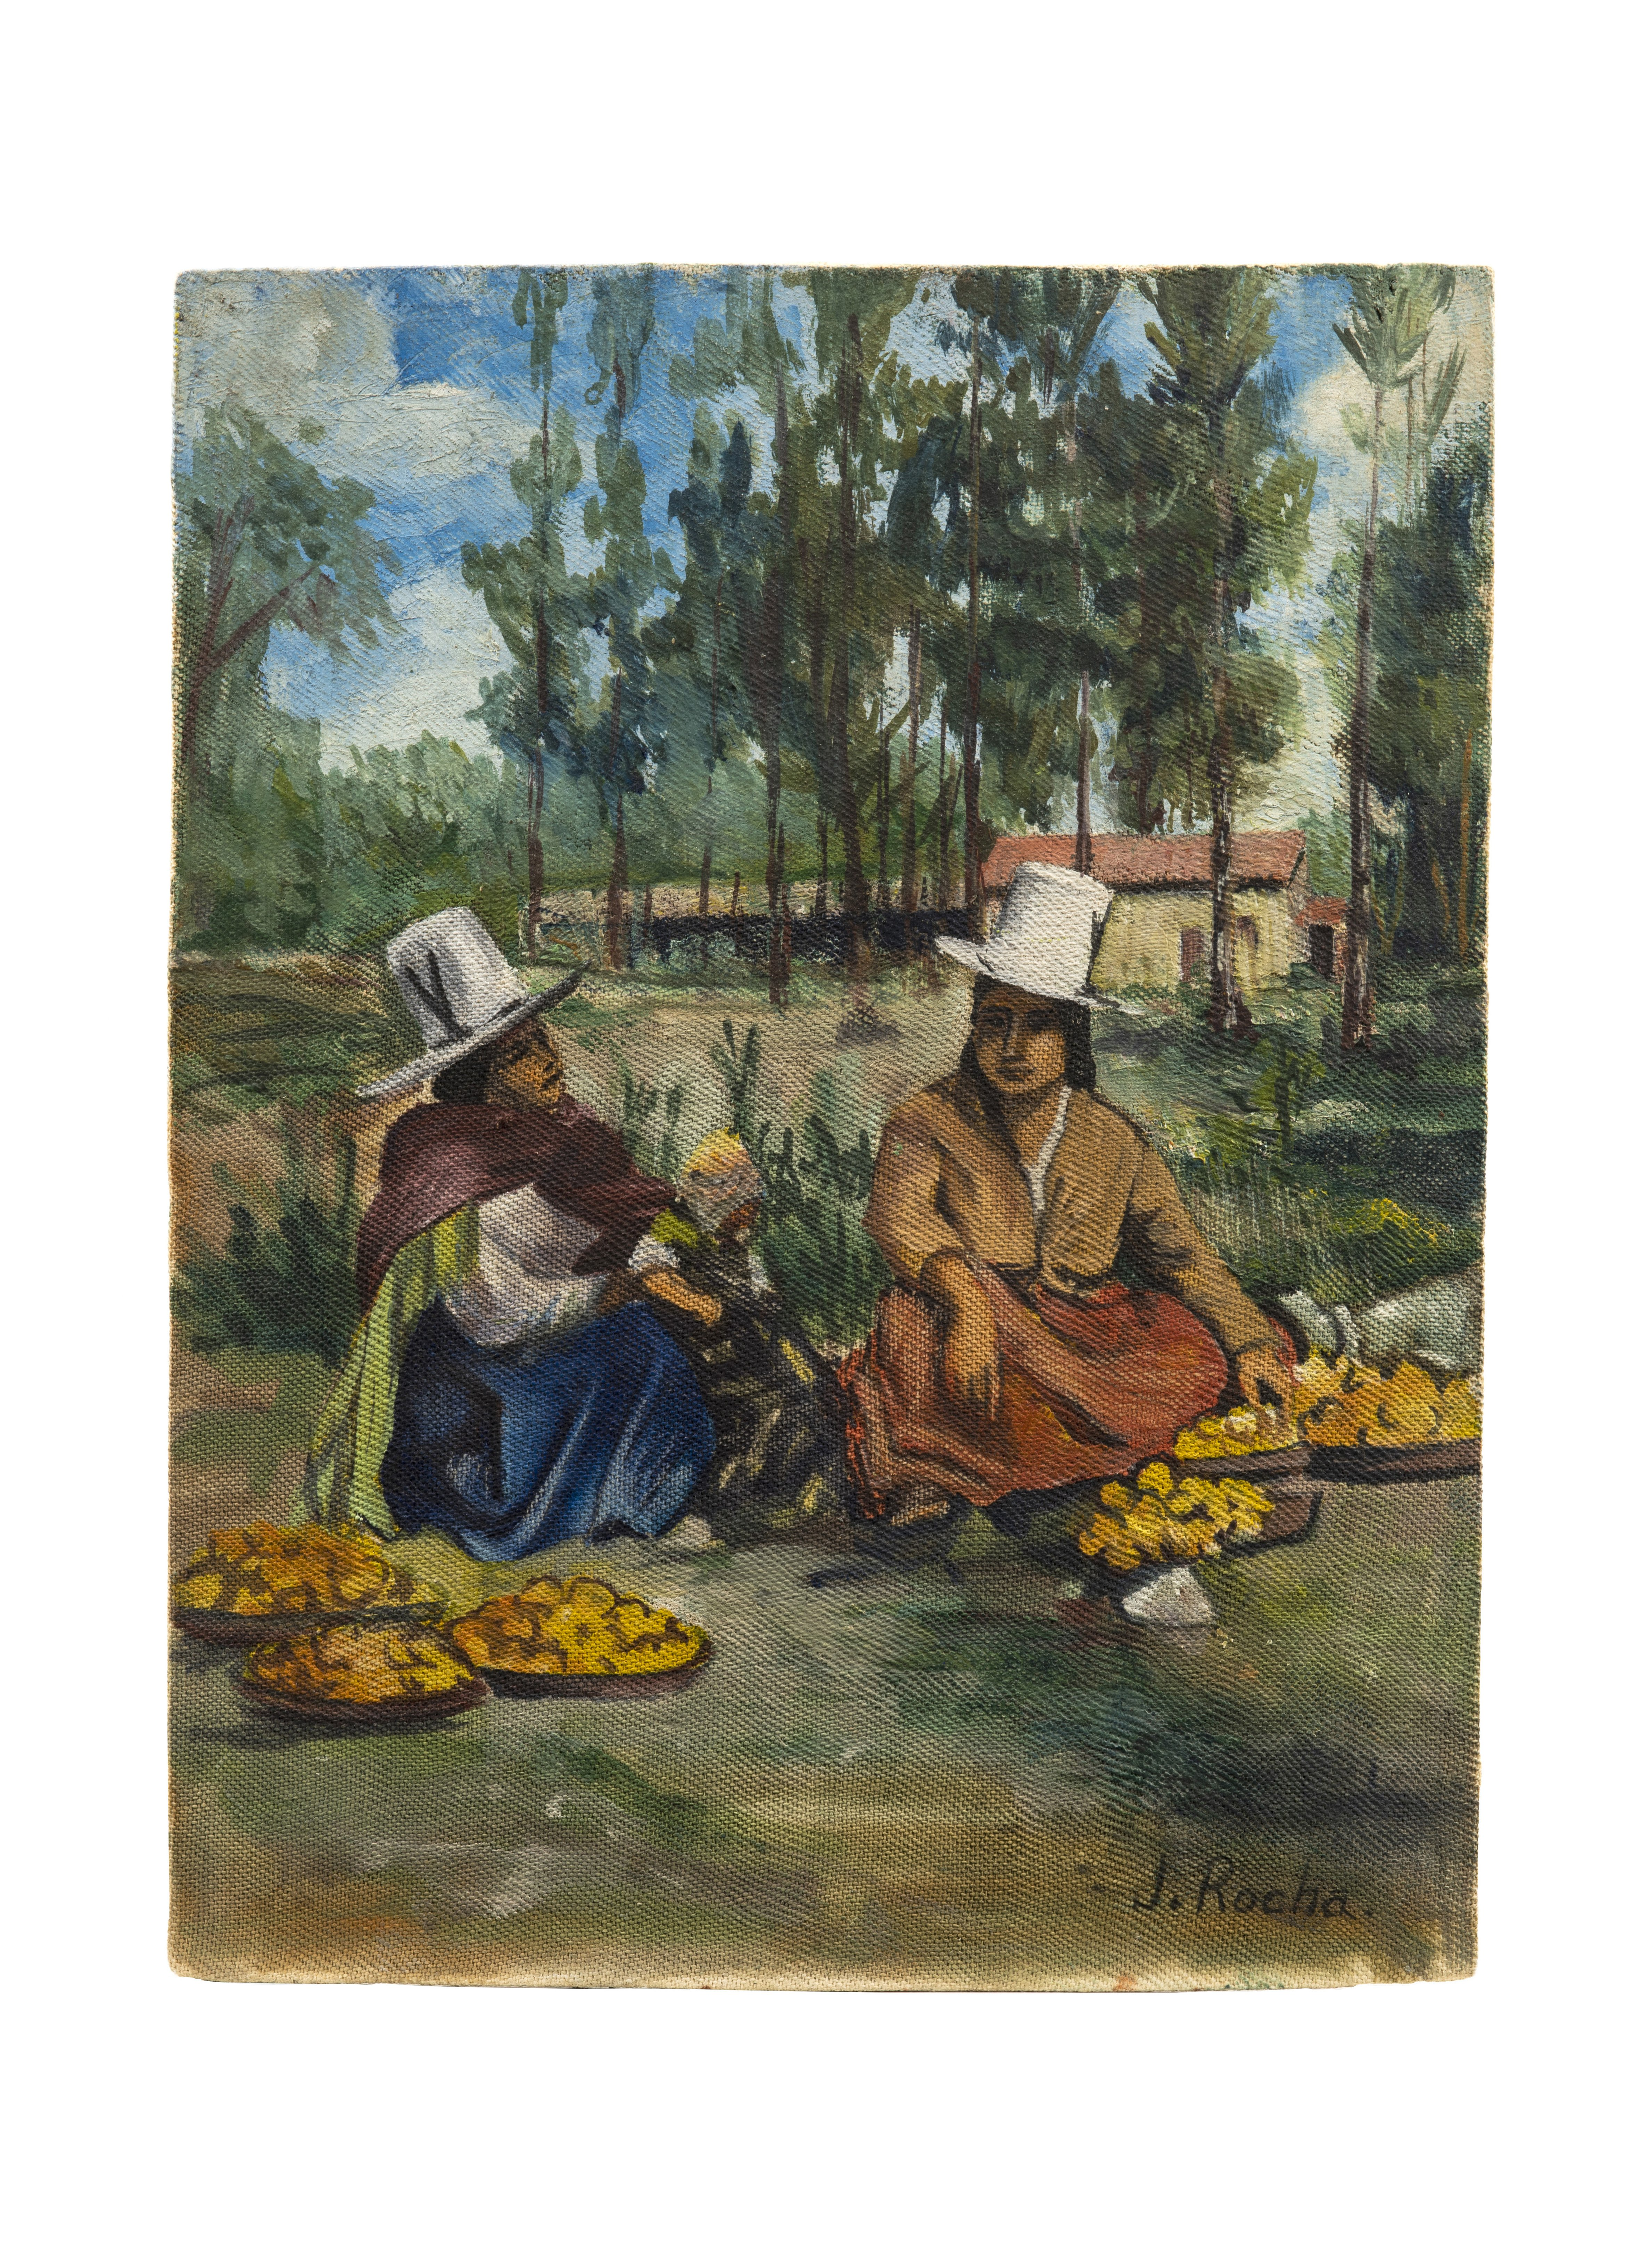 A Vintage South American Traditional Landscape Painting By Jose Rocha